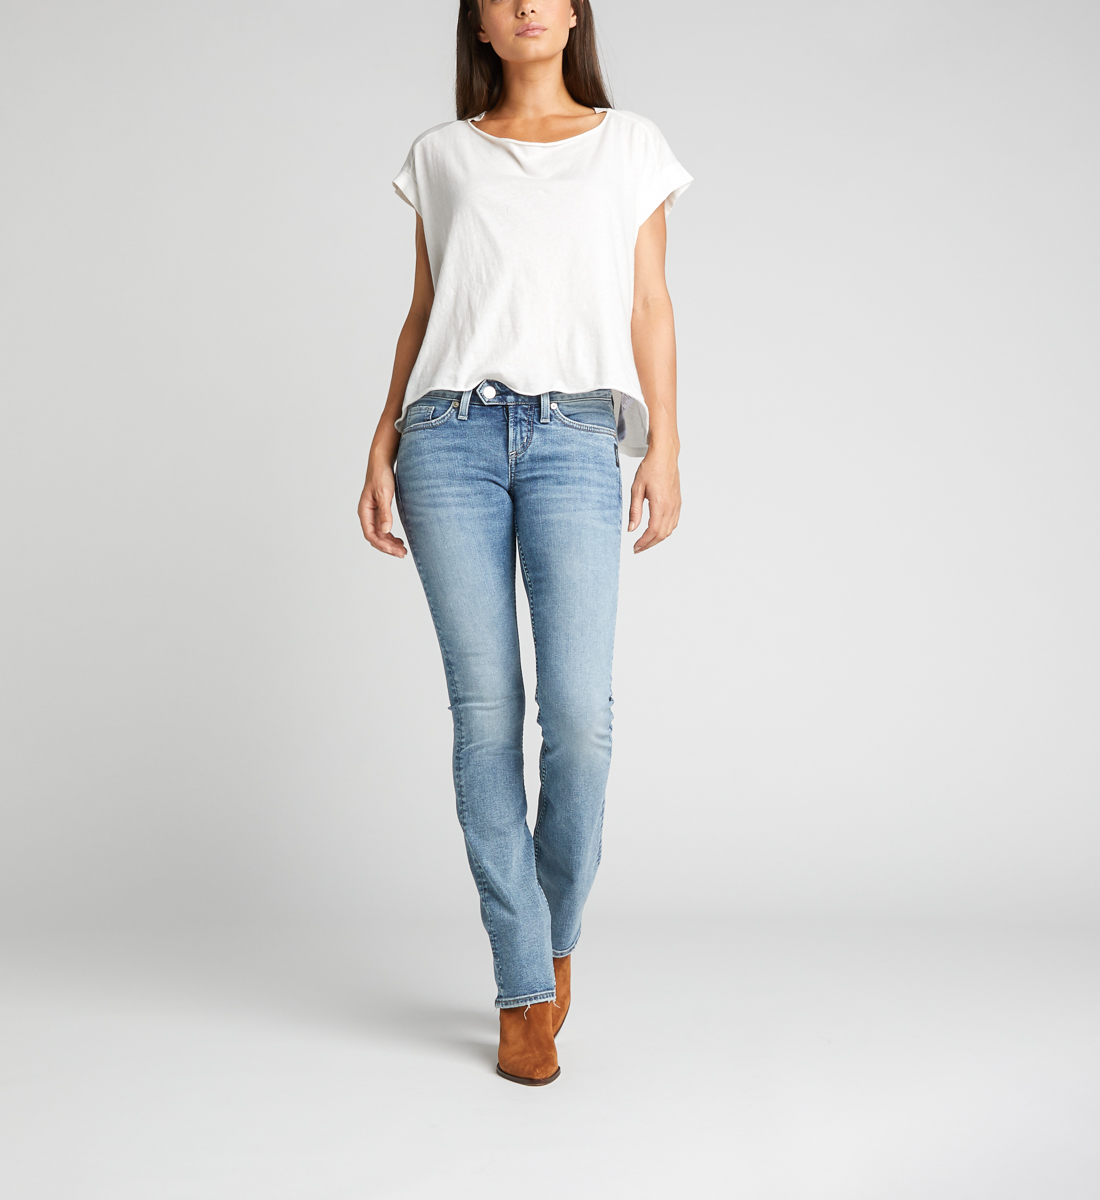 Tuesday Low Rise Slim Bootcut Jeans, , hi-res